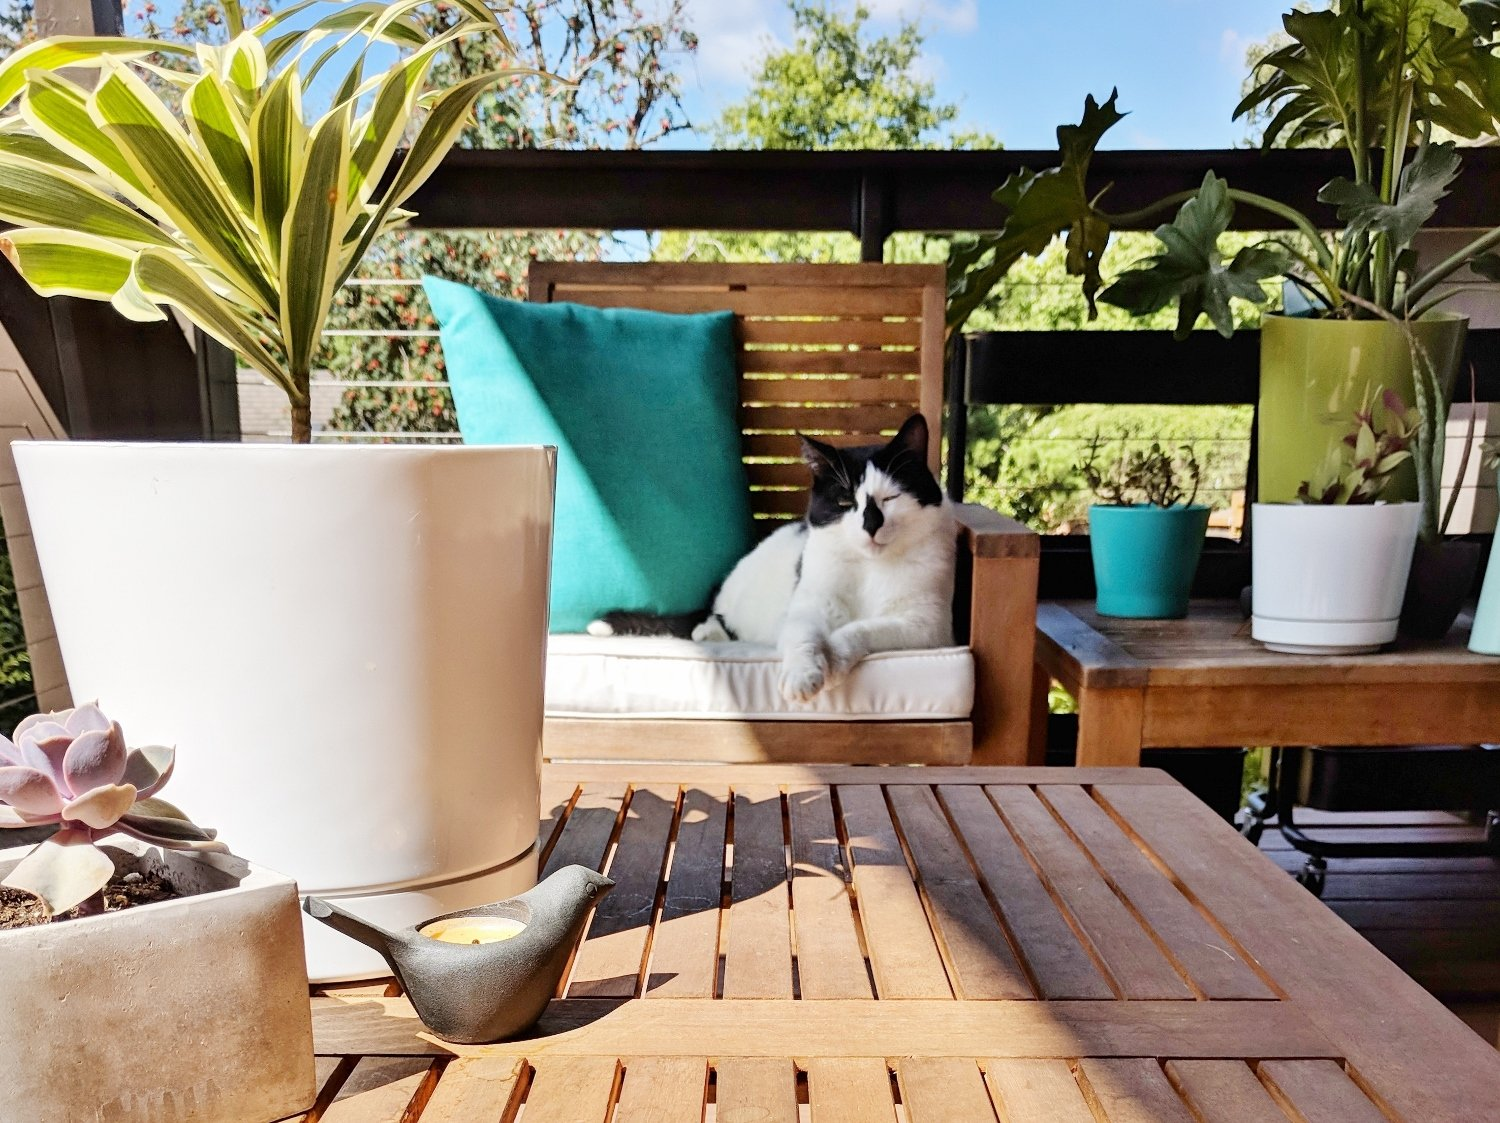 Creating a Catio Space for Cats and Their Humans